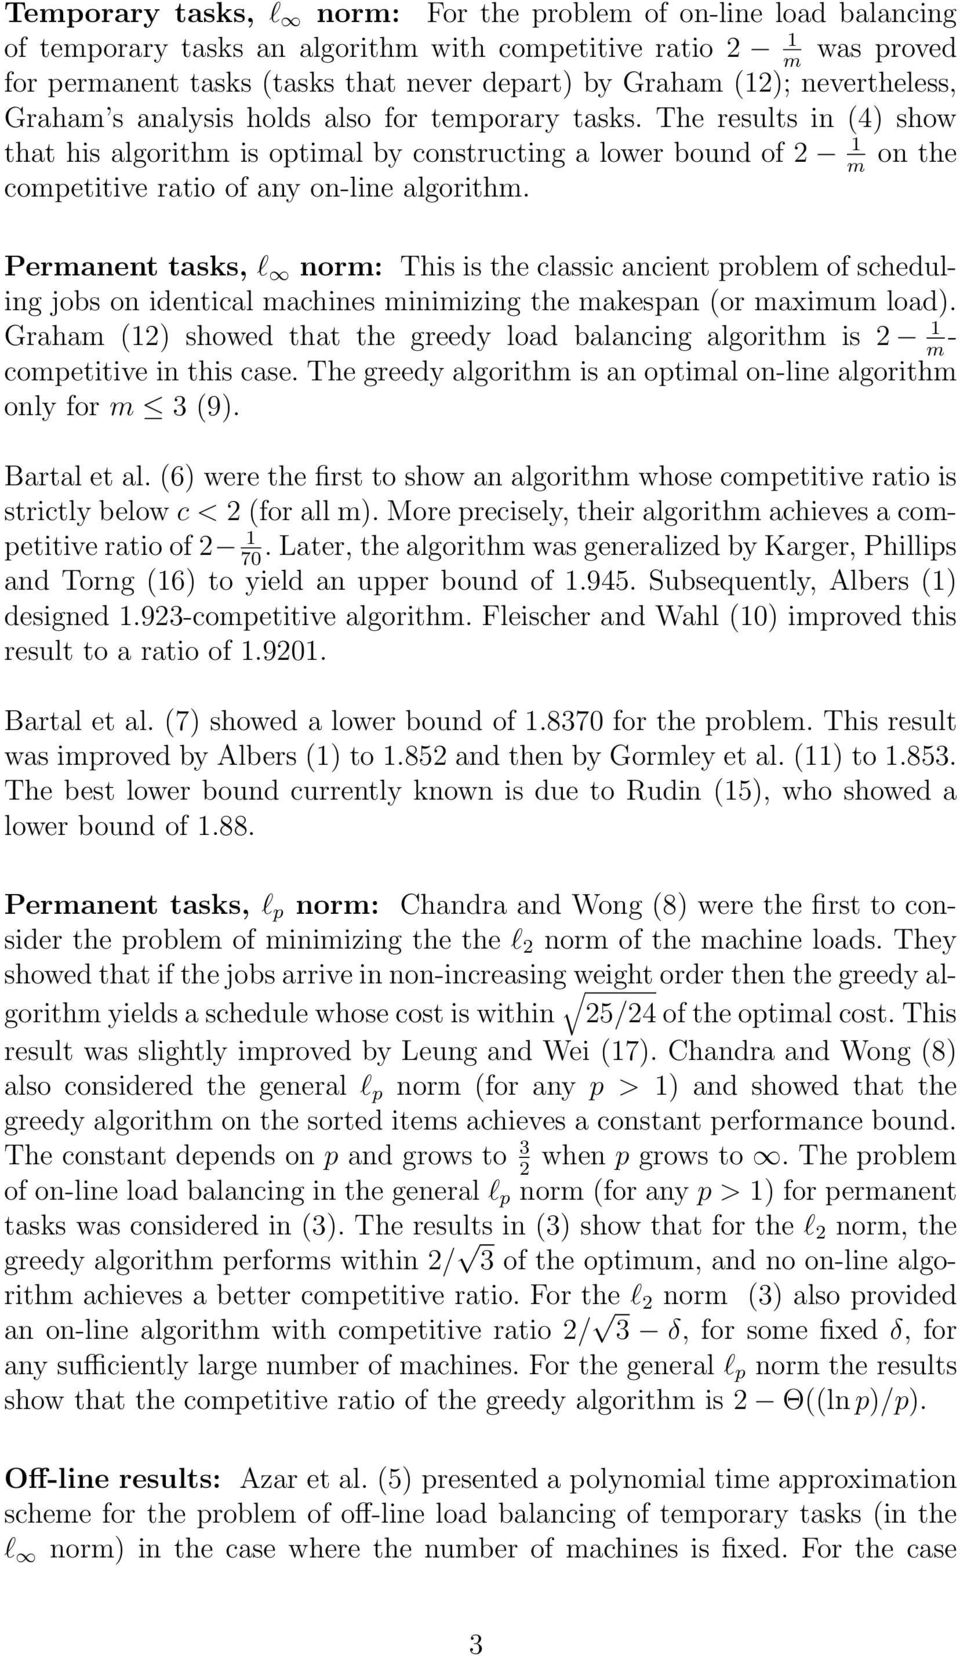 The results in (4) show that his algorithm is optimal by constructing a lower bound of 2 1 on the m competitive ratio of any on-line algorithm.